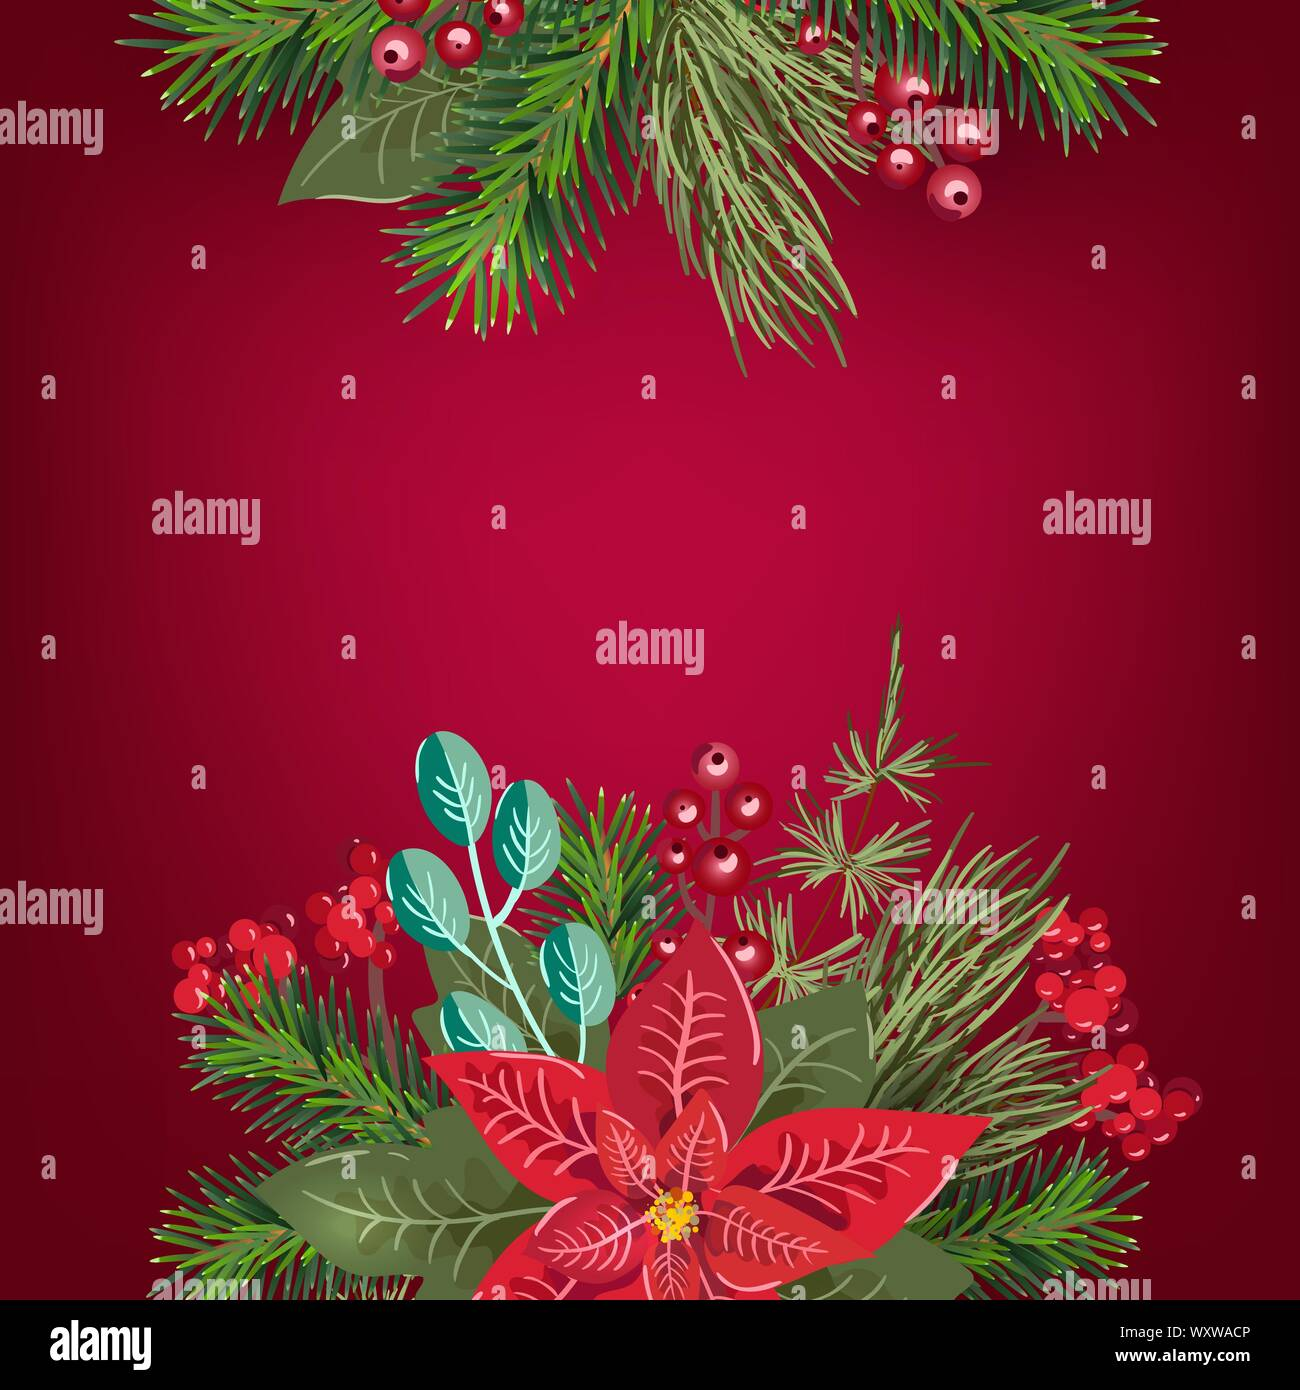 Merry Christmas Invitation And Happy New Year Party Greeting